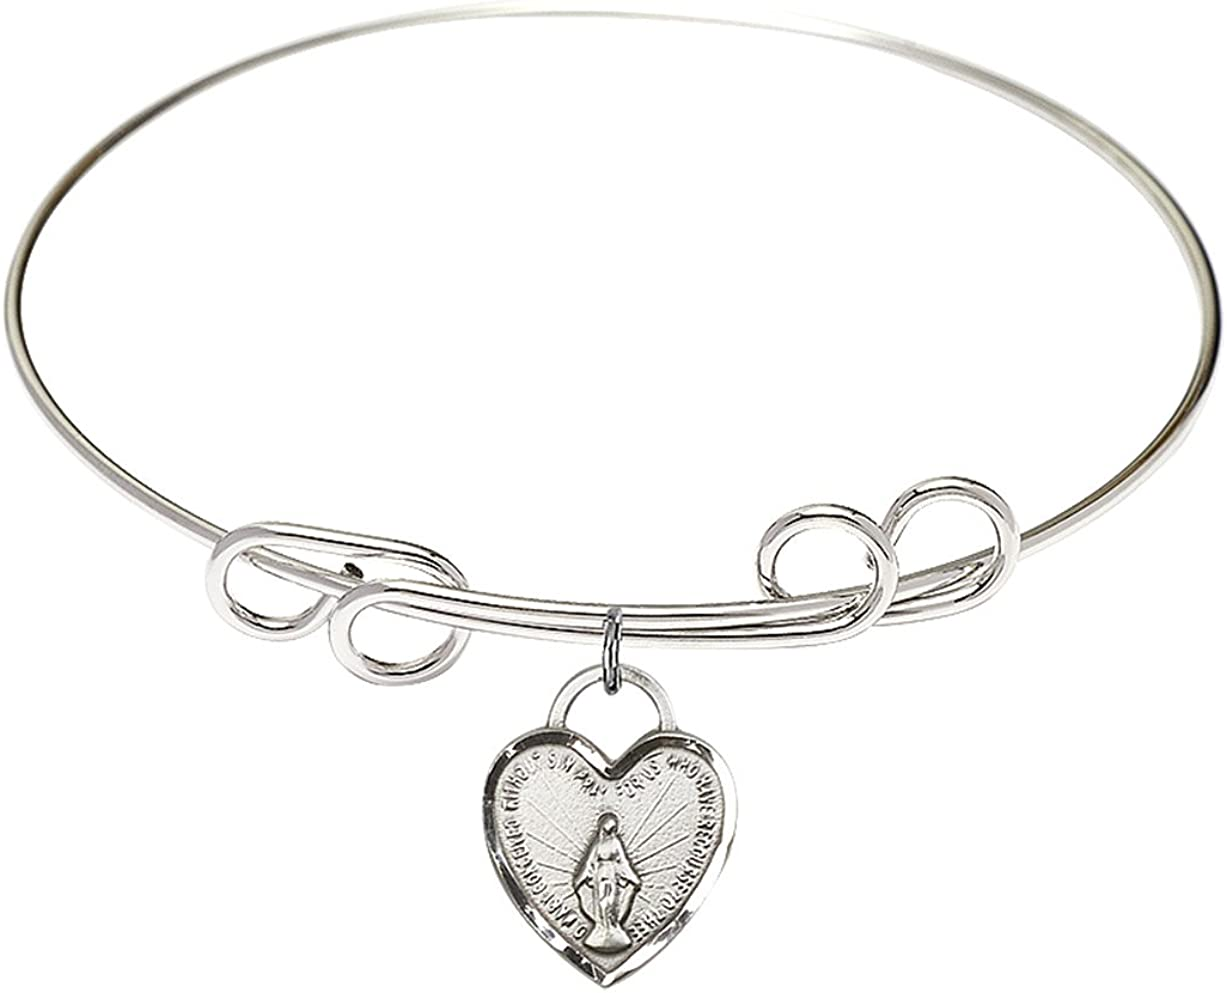 Bonyak Jewelry Round Double Loop Miraculous Bracelet Max 40% OFF He National products Bangle w